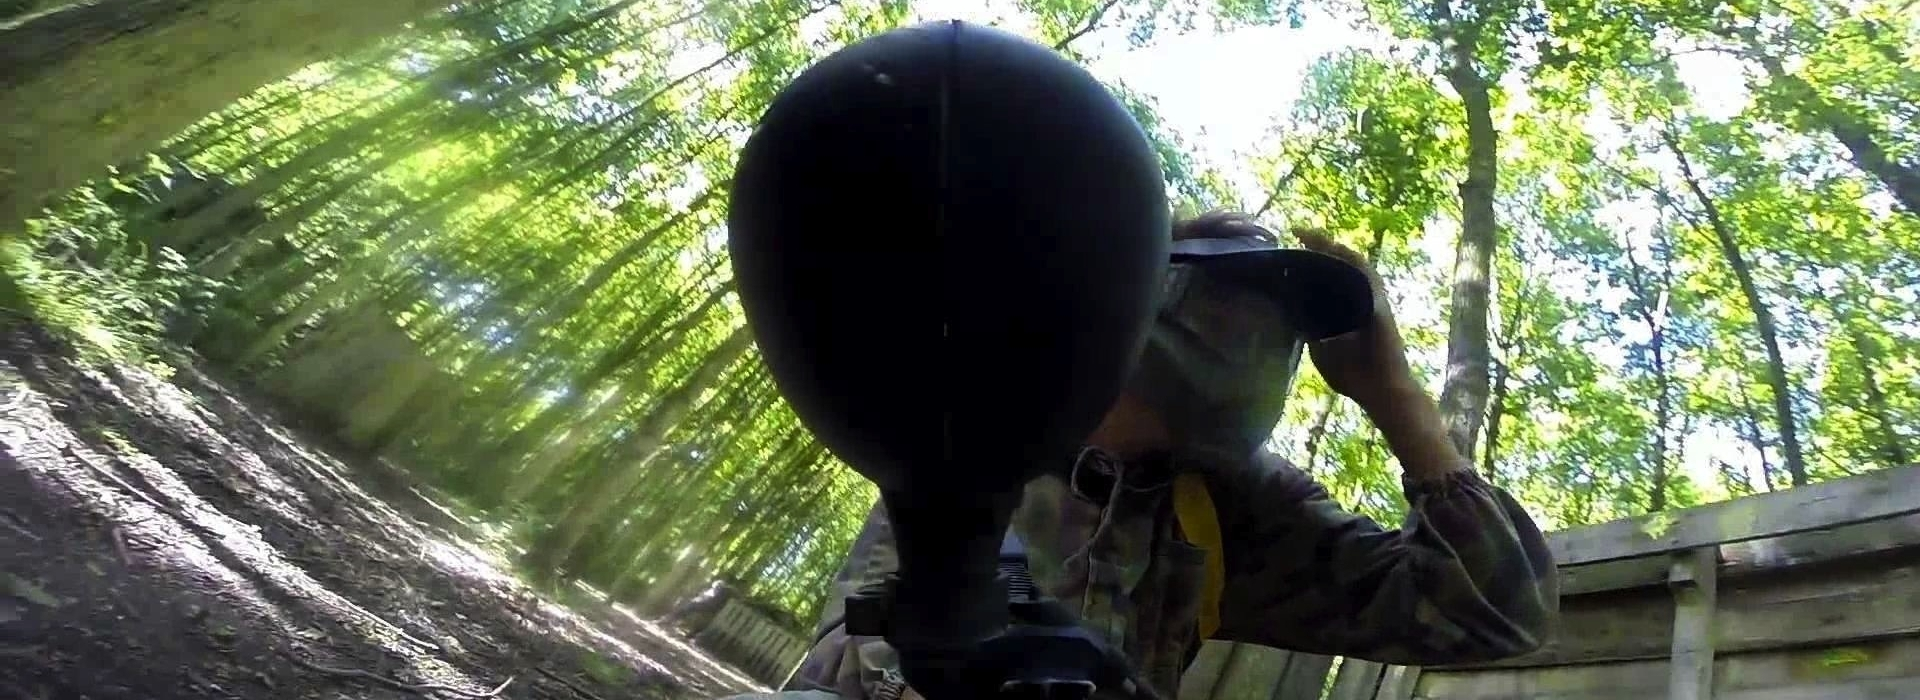 14715291820paintballen-in-het-bos.jpg